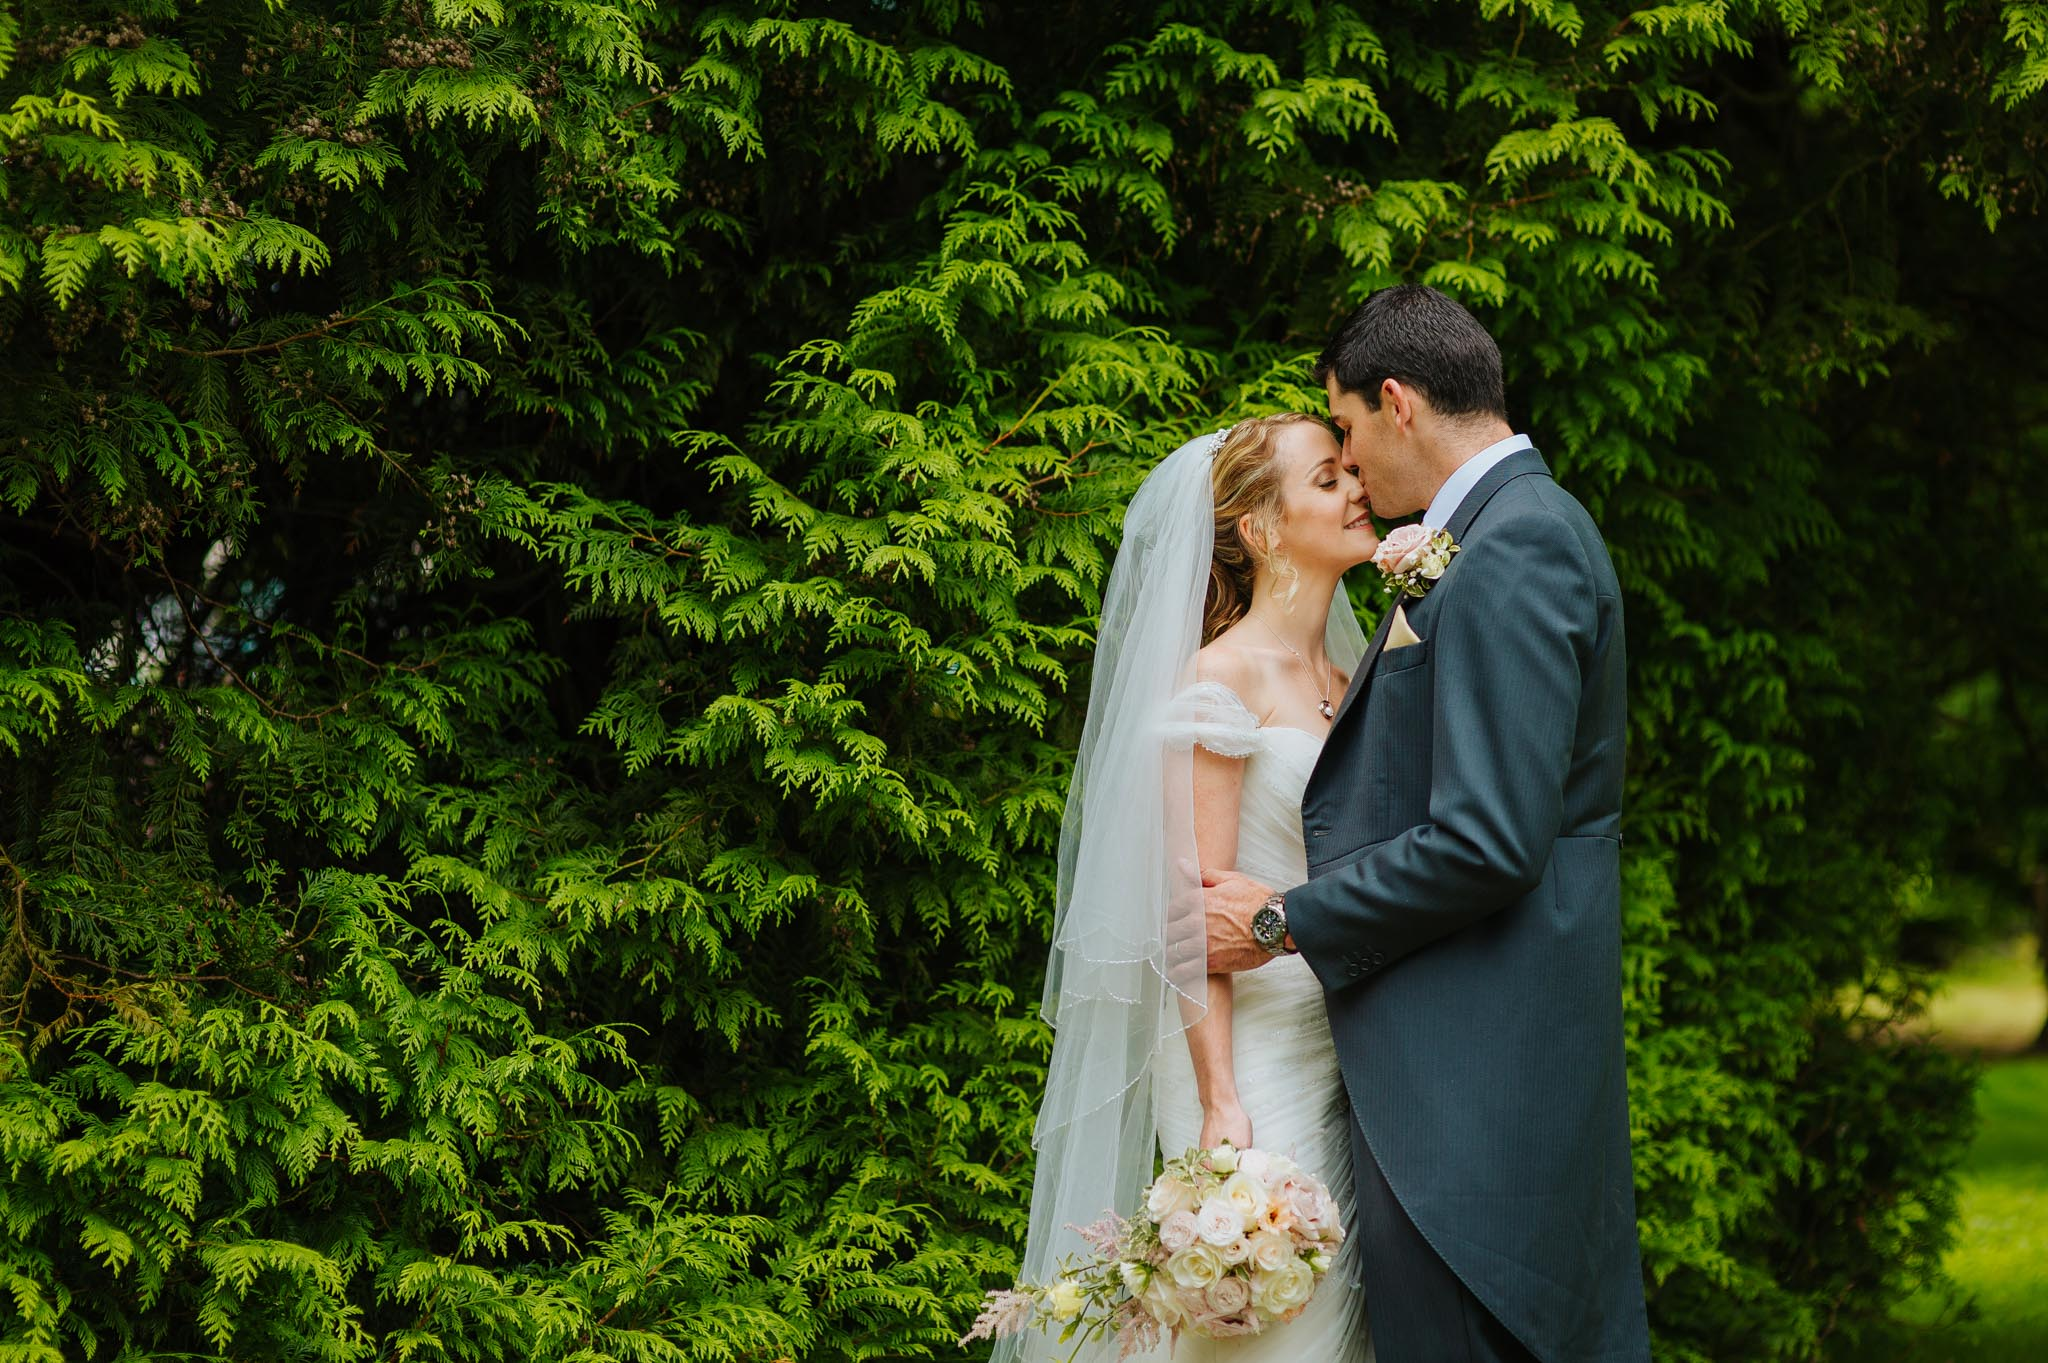 Georgina + Mike - Wedding photography in Malvern, Worcestershire 51